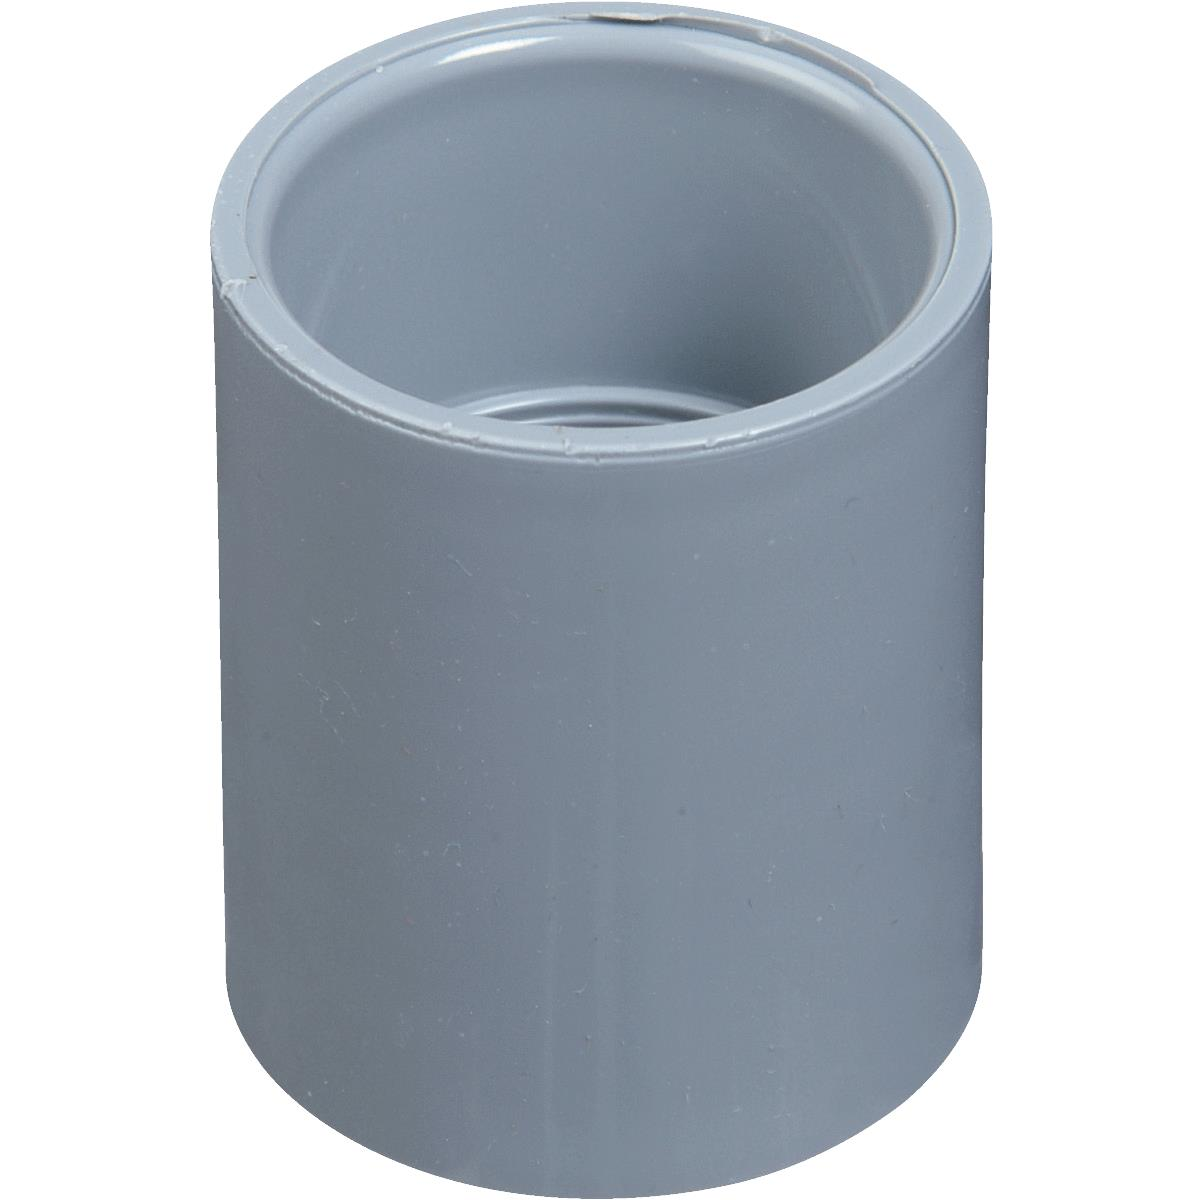 Carlon PVC Socket Conduit Coupling